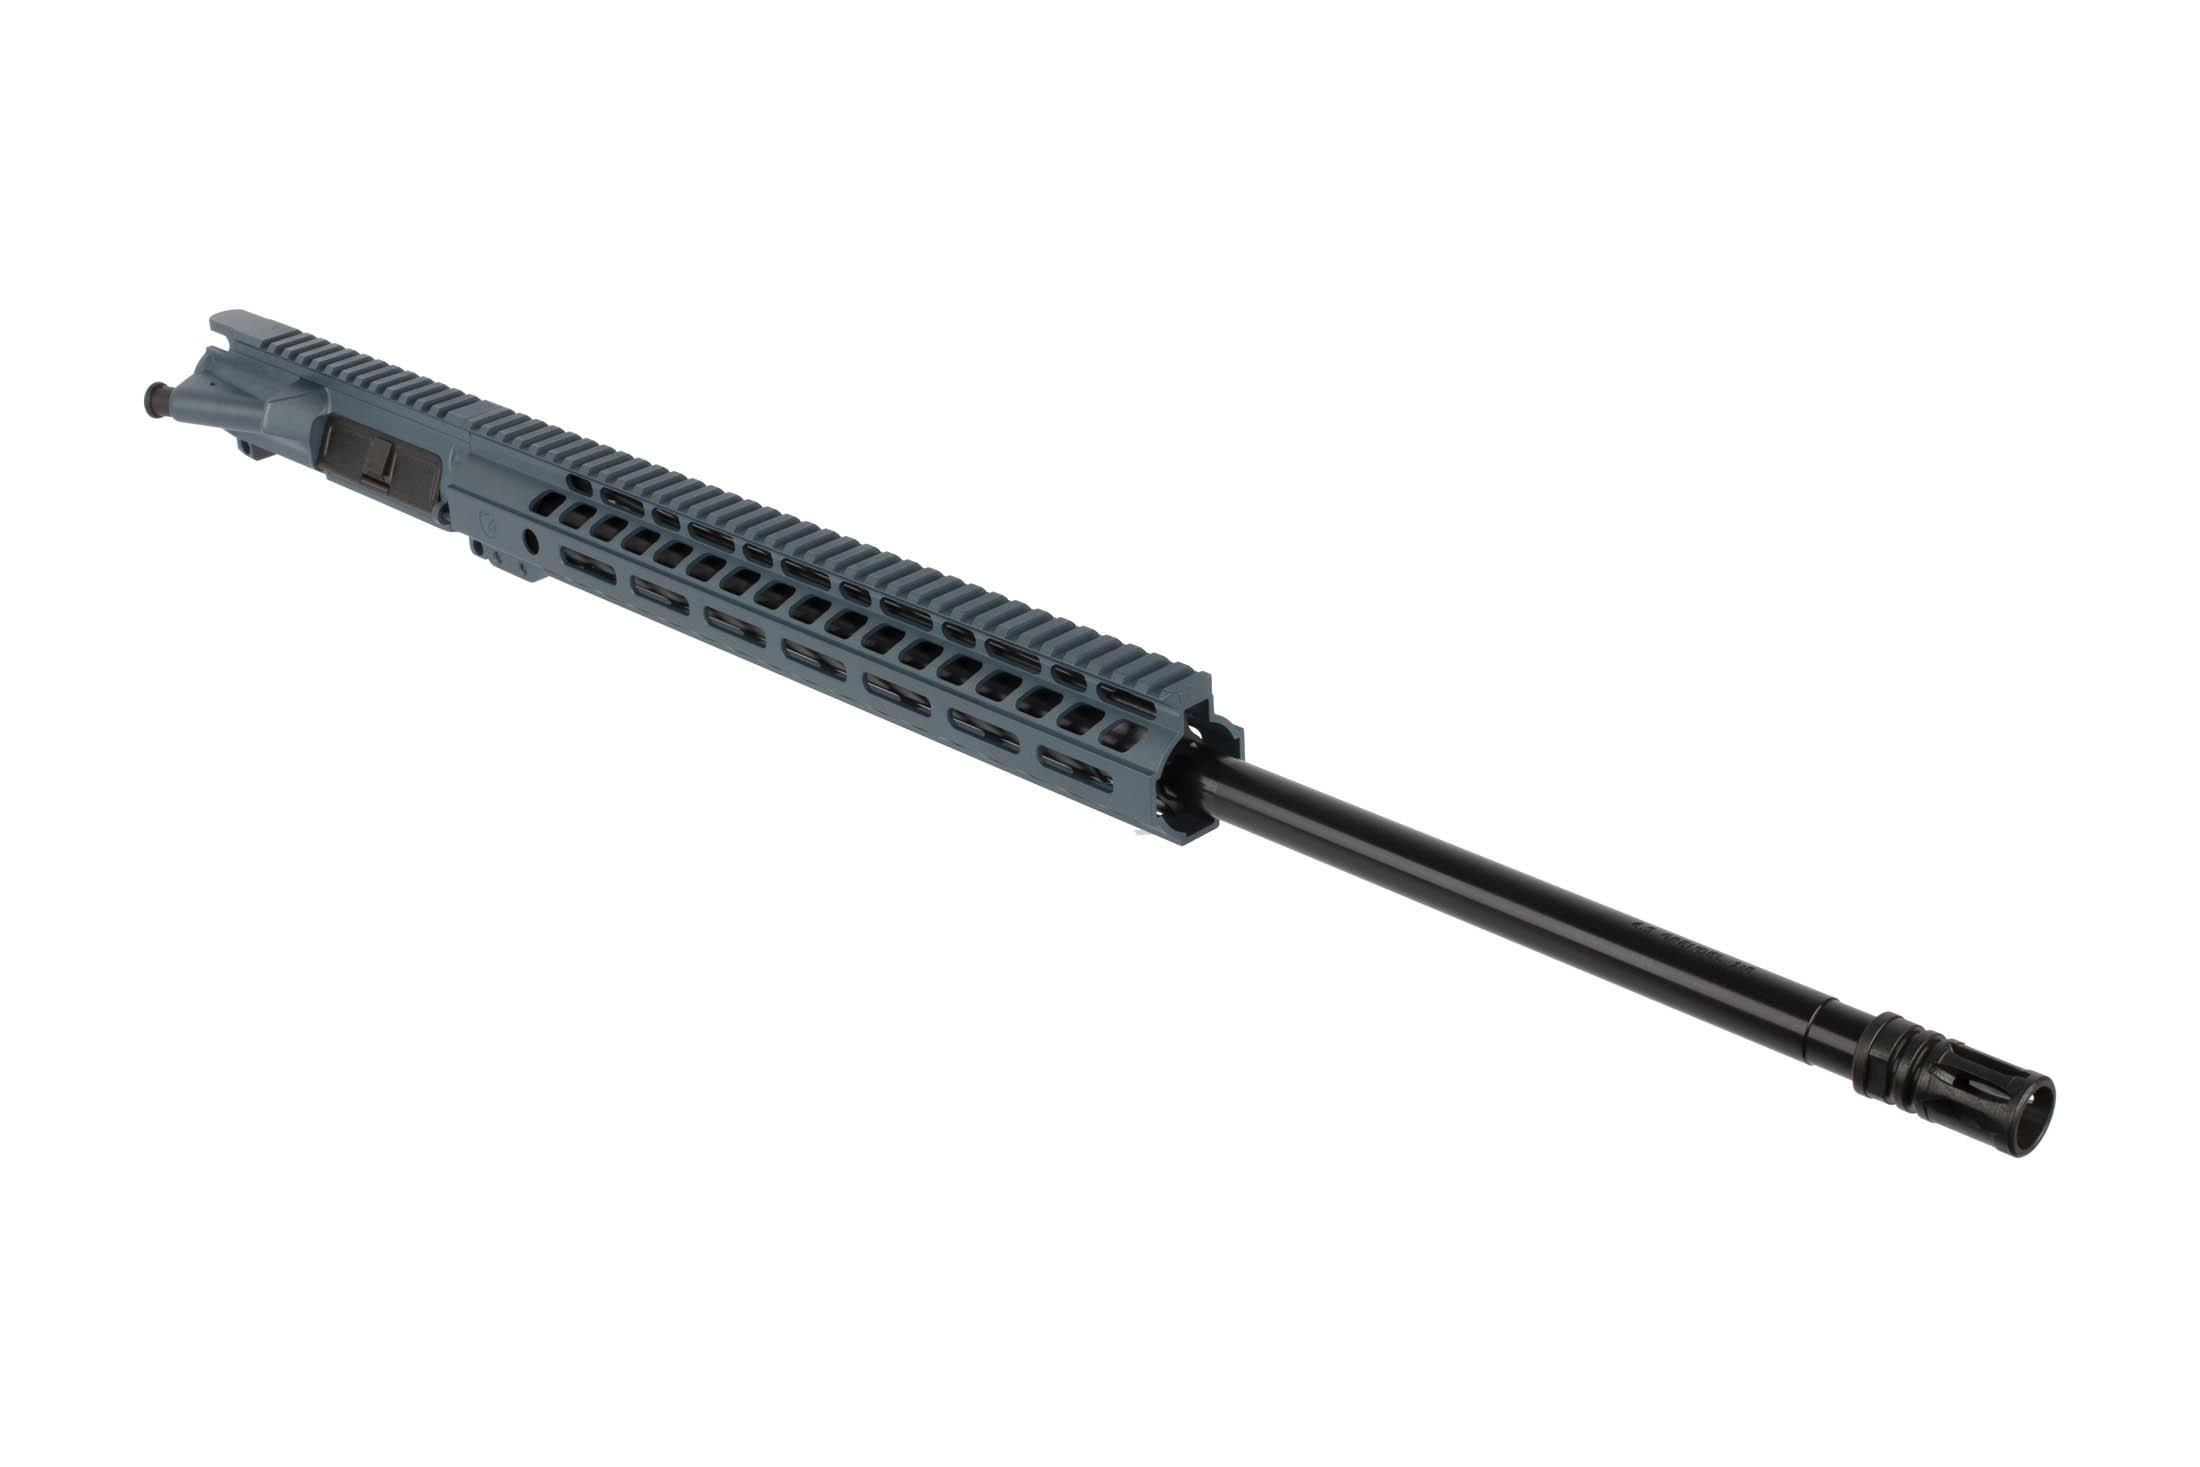 The Ghost Firearms 6.5 Grendel Elite Rifle Length Barreled Upper features a 24 barrel with a Melonite finish